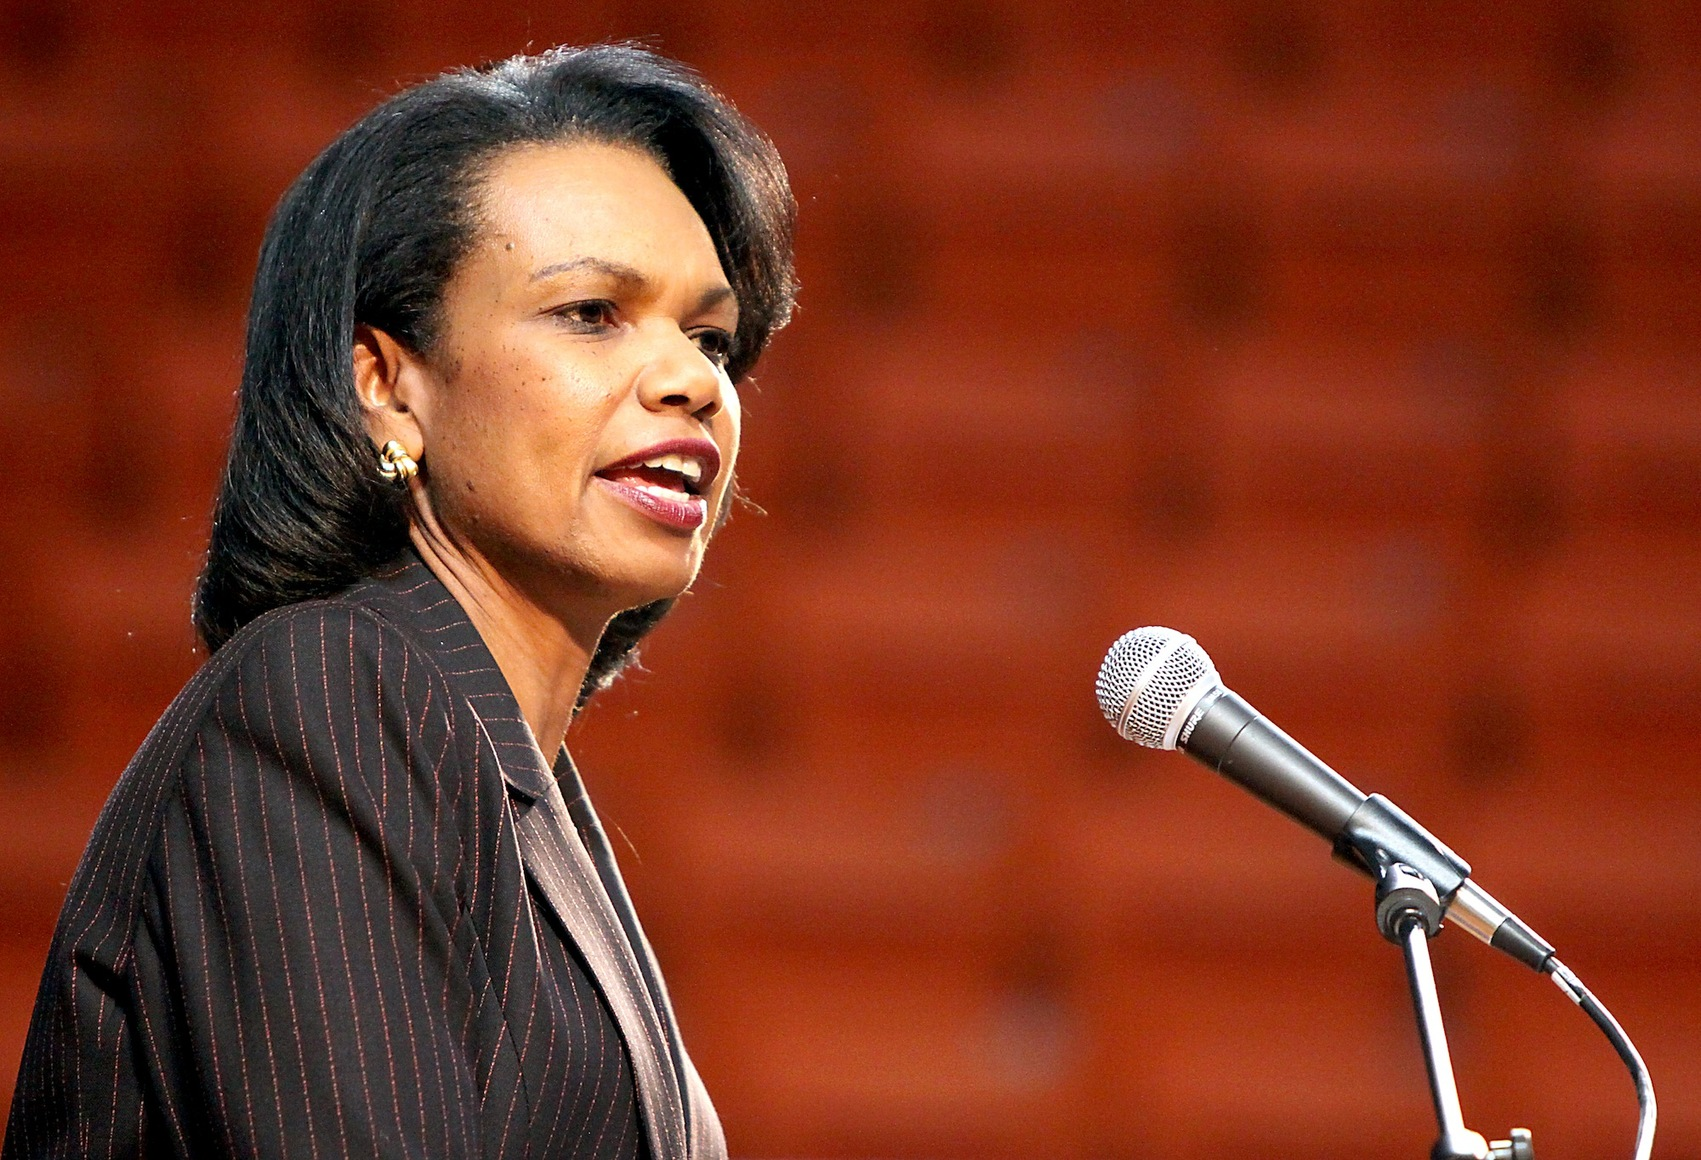 Former Secretary of State Condoleeza Rice discusses politics during a Global Briefing Series discussion at Gallagher-Iba Arena in Stillwater, Okla. on Thursday, Feb. 4, 2010.